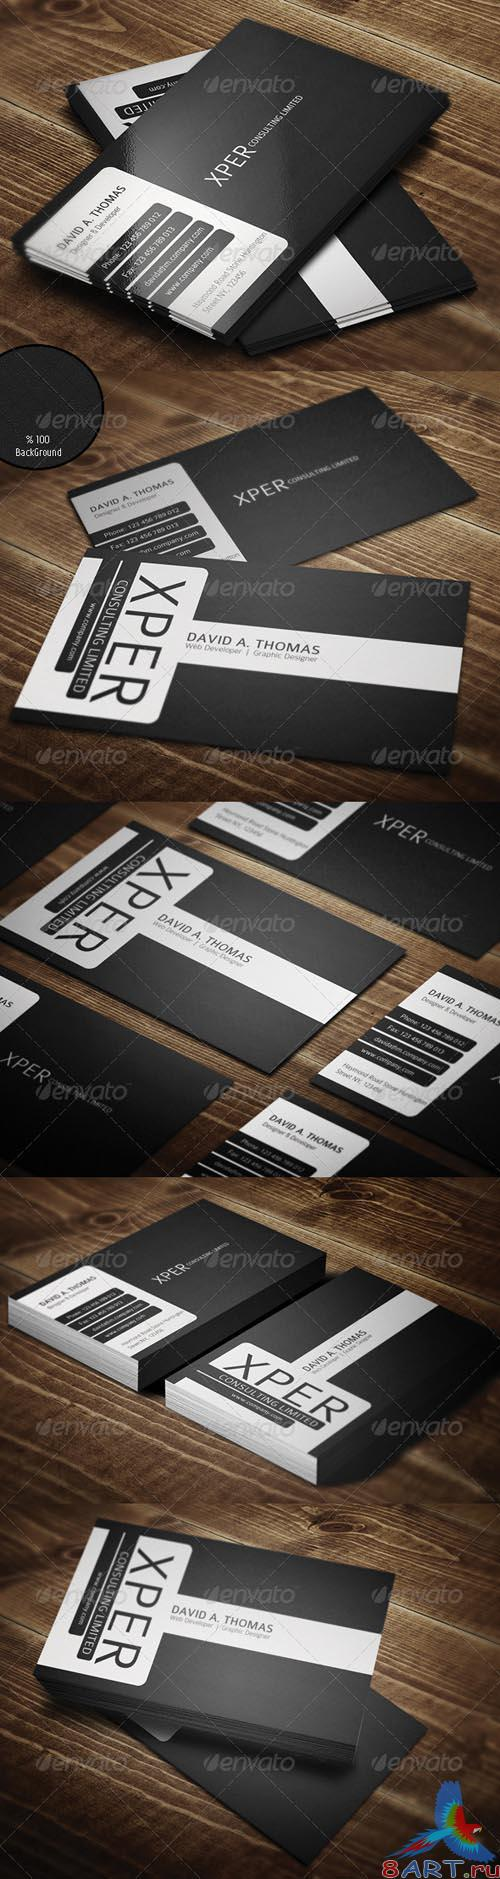 GraphicRiver Personal Business Card - REUPLOAD